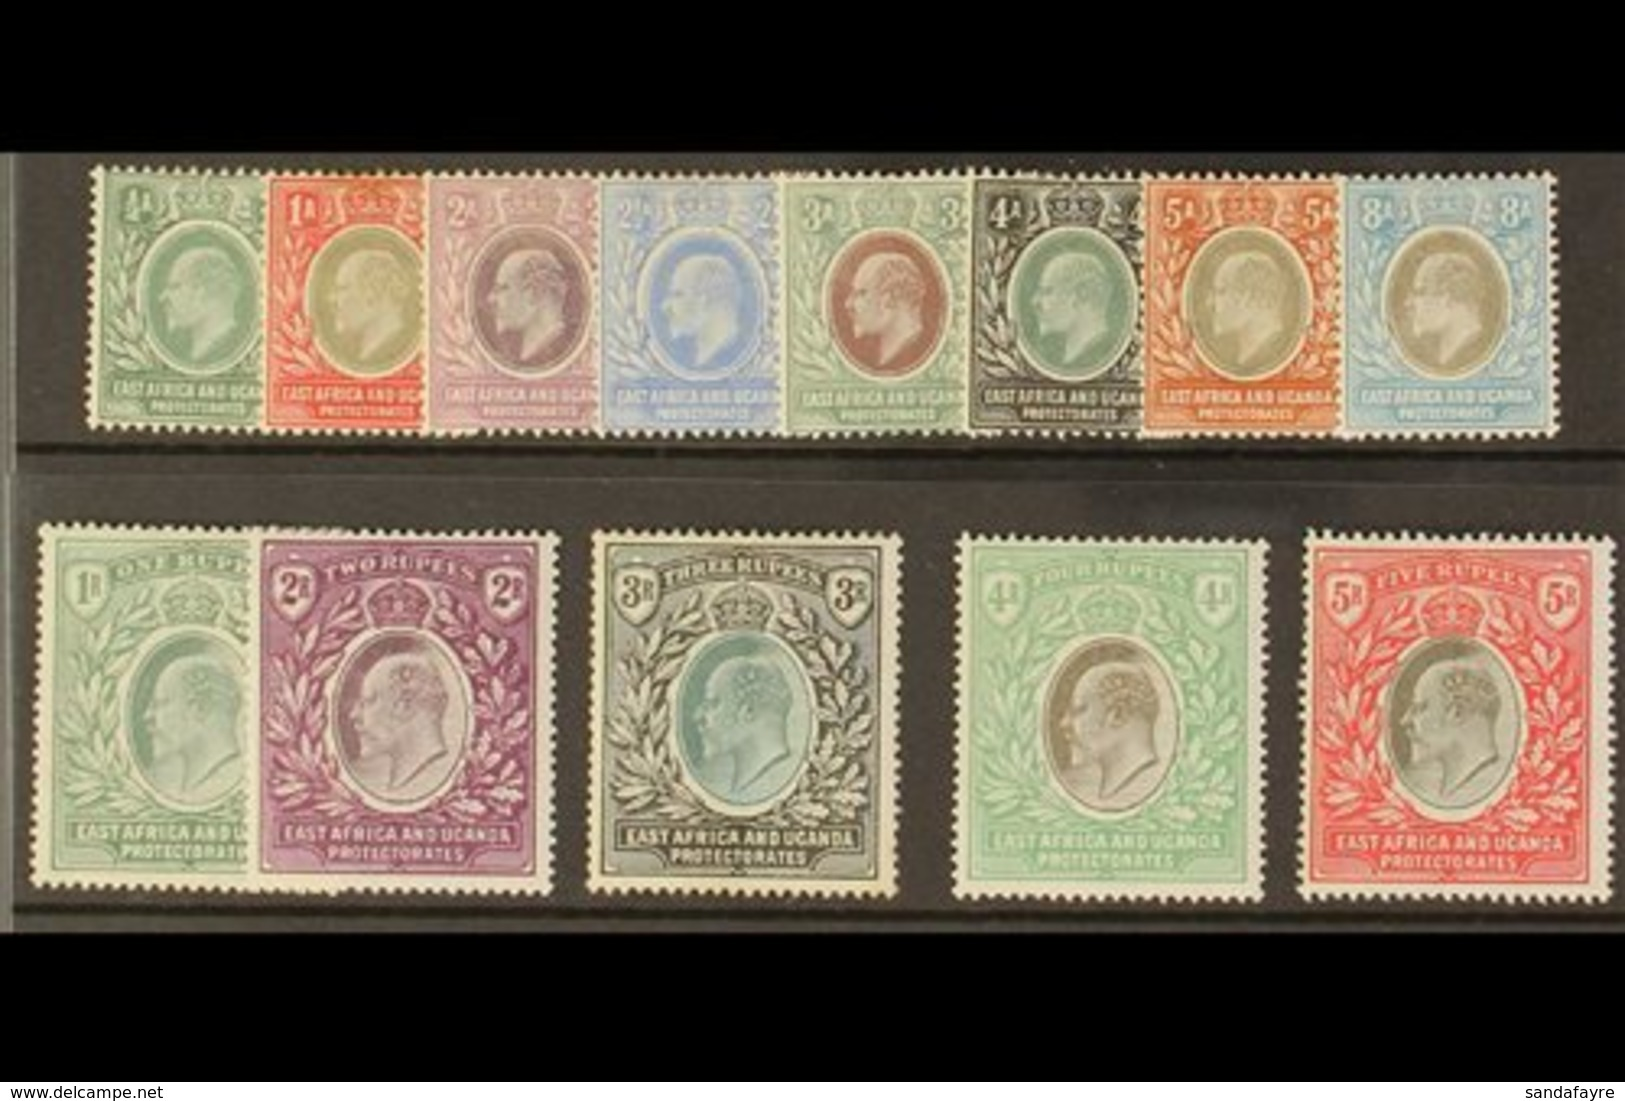 1903 - 04 Ed VII Set Complete To 5r, Wmk CA, SG 1-13, Very Fine And Fresh Mint. (13 Stamps) For More Images, Please Visi - Vide